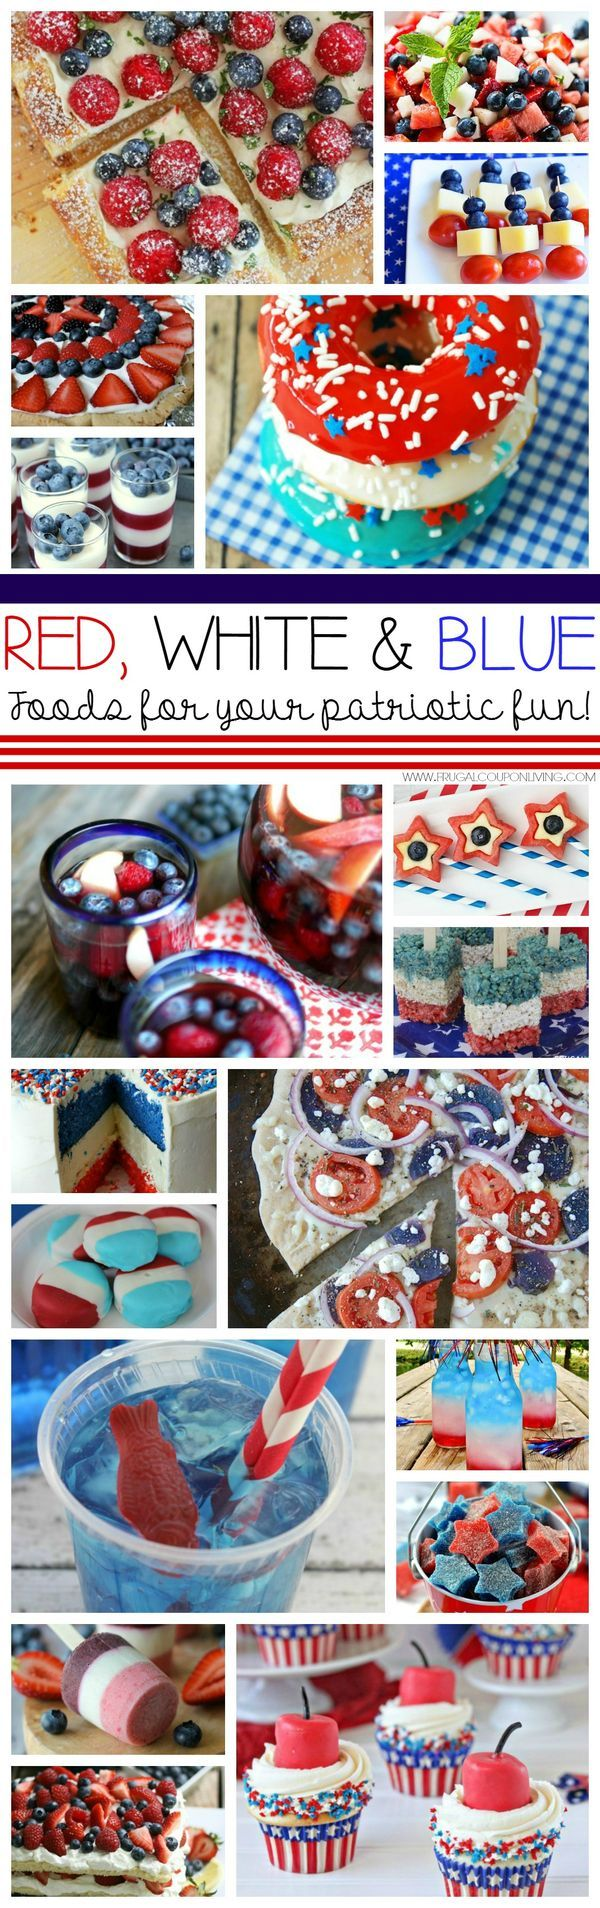 Best 25+ American party food ideas on Pinterest | American party, Bbq recipes  4th of july and Mixed alcoholic drinks